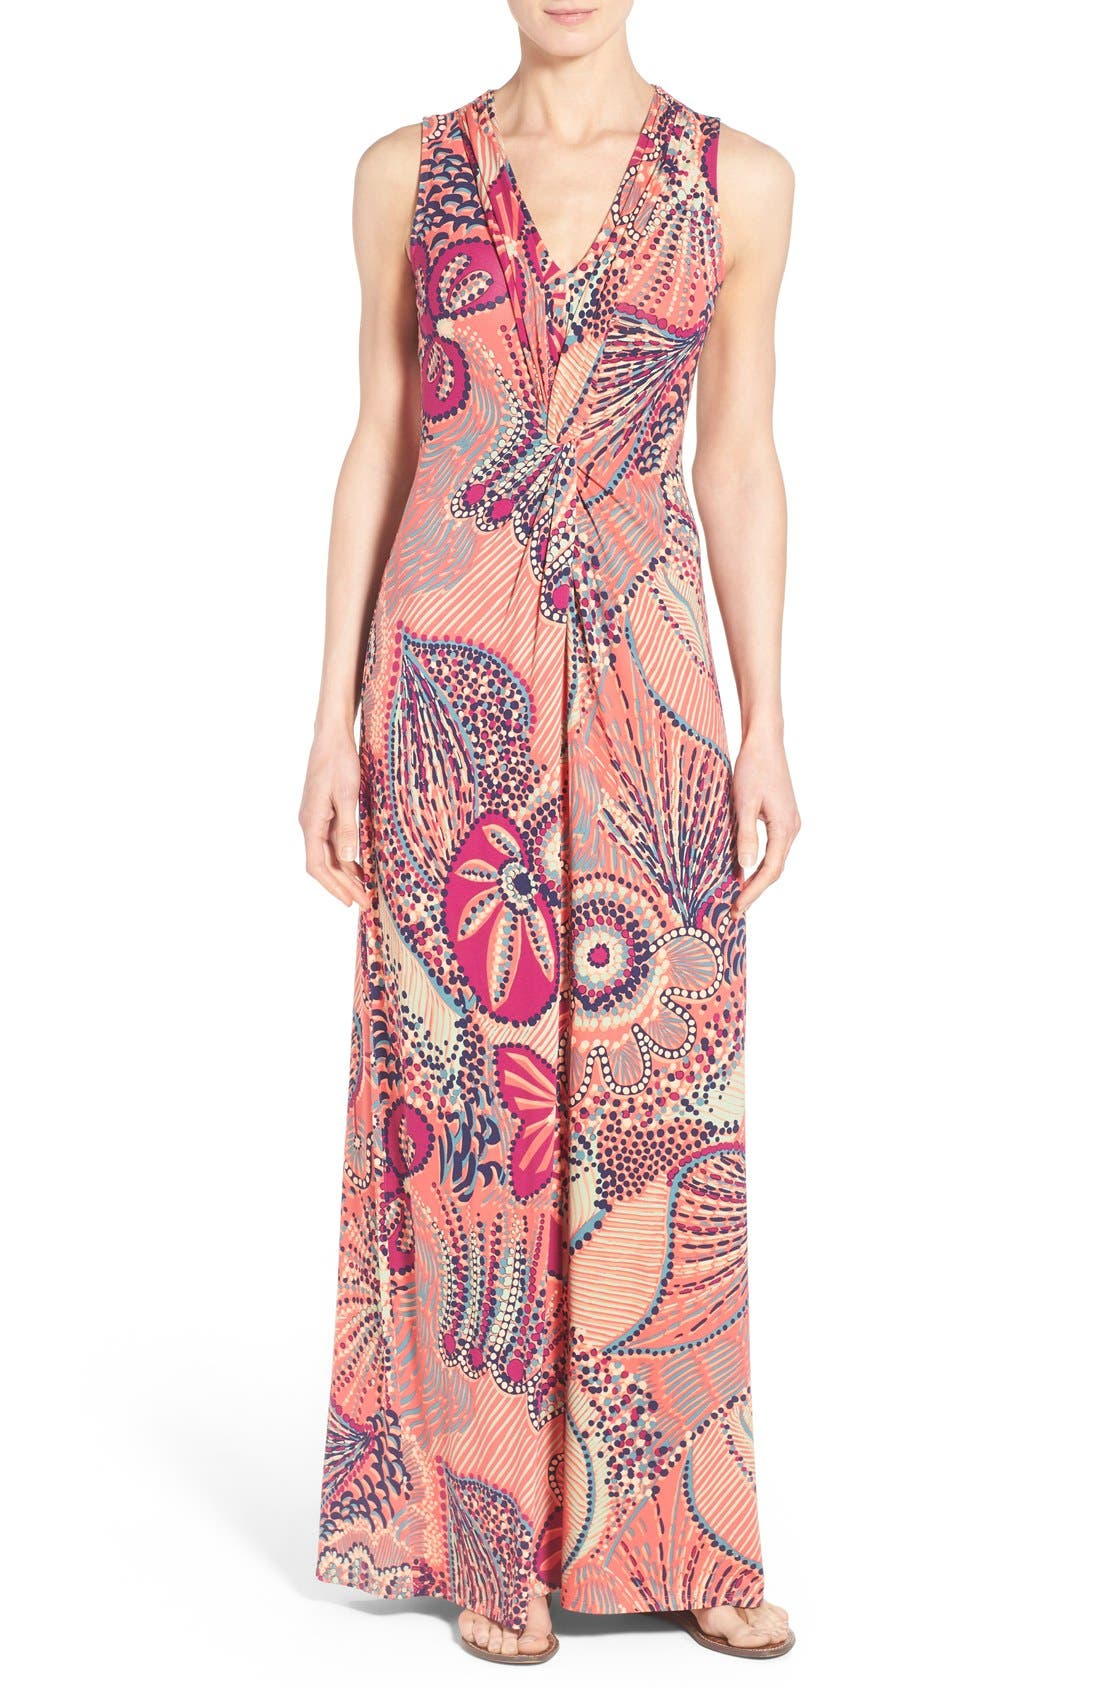 'Carnival Lights' Print V-Neck Maxi Dress, Main, color, 950